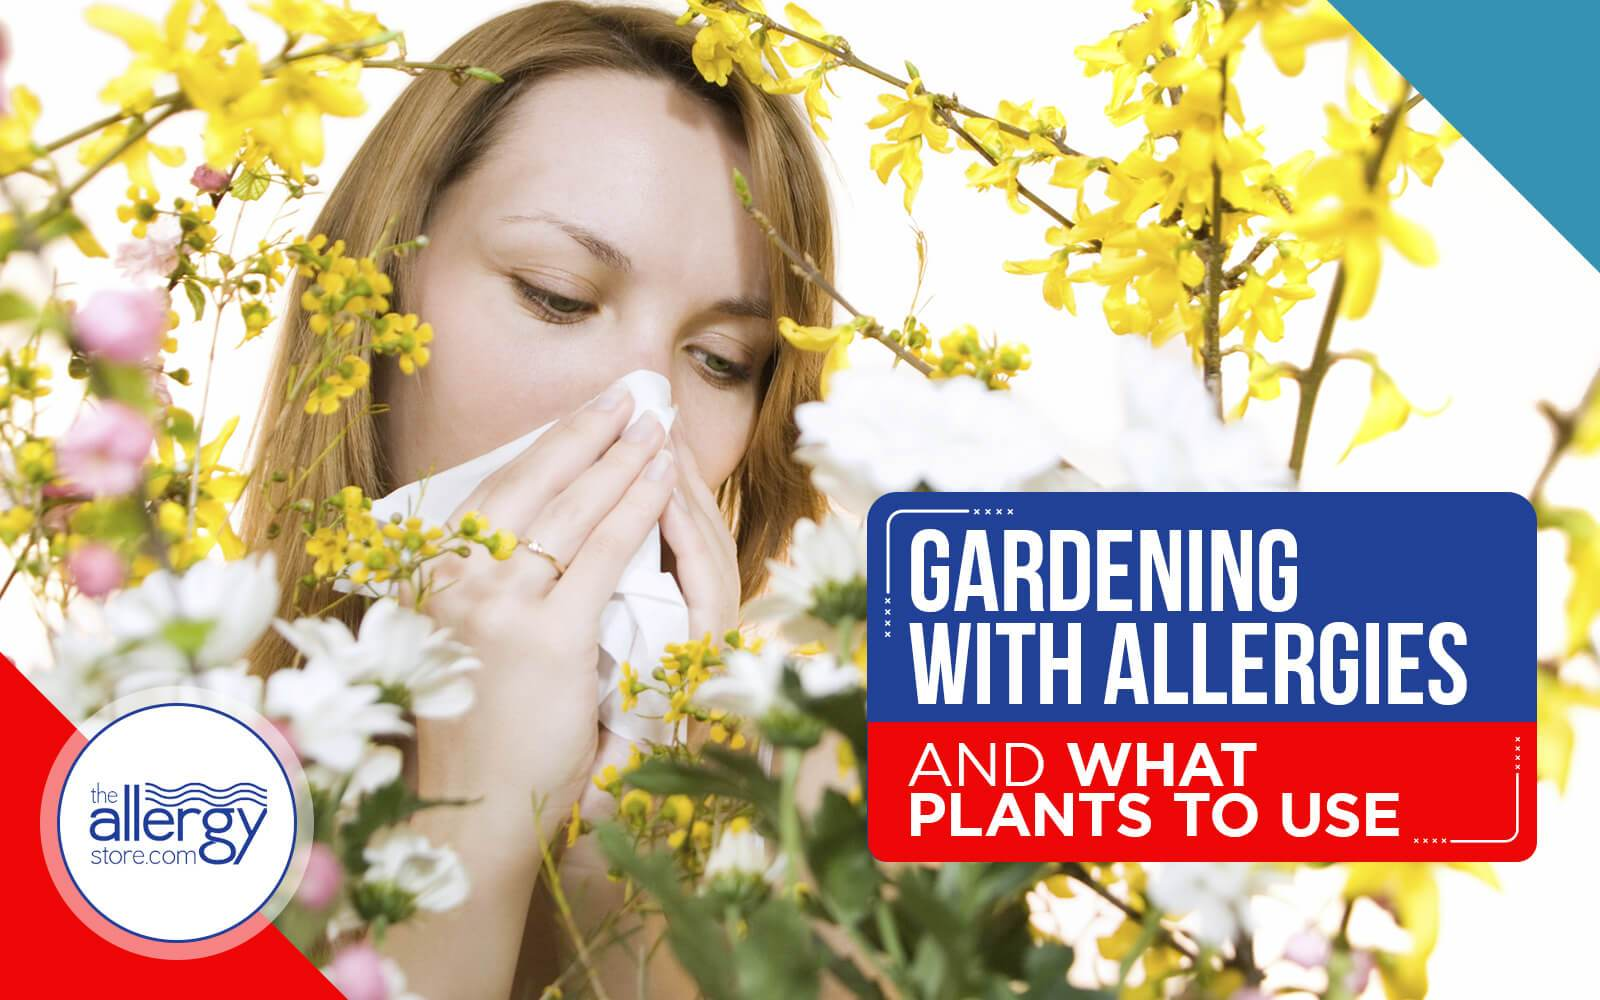 Gardening with Allergies and What Plants to Use